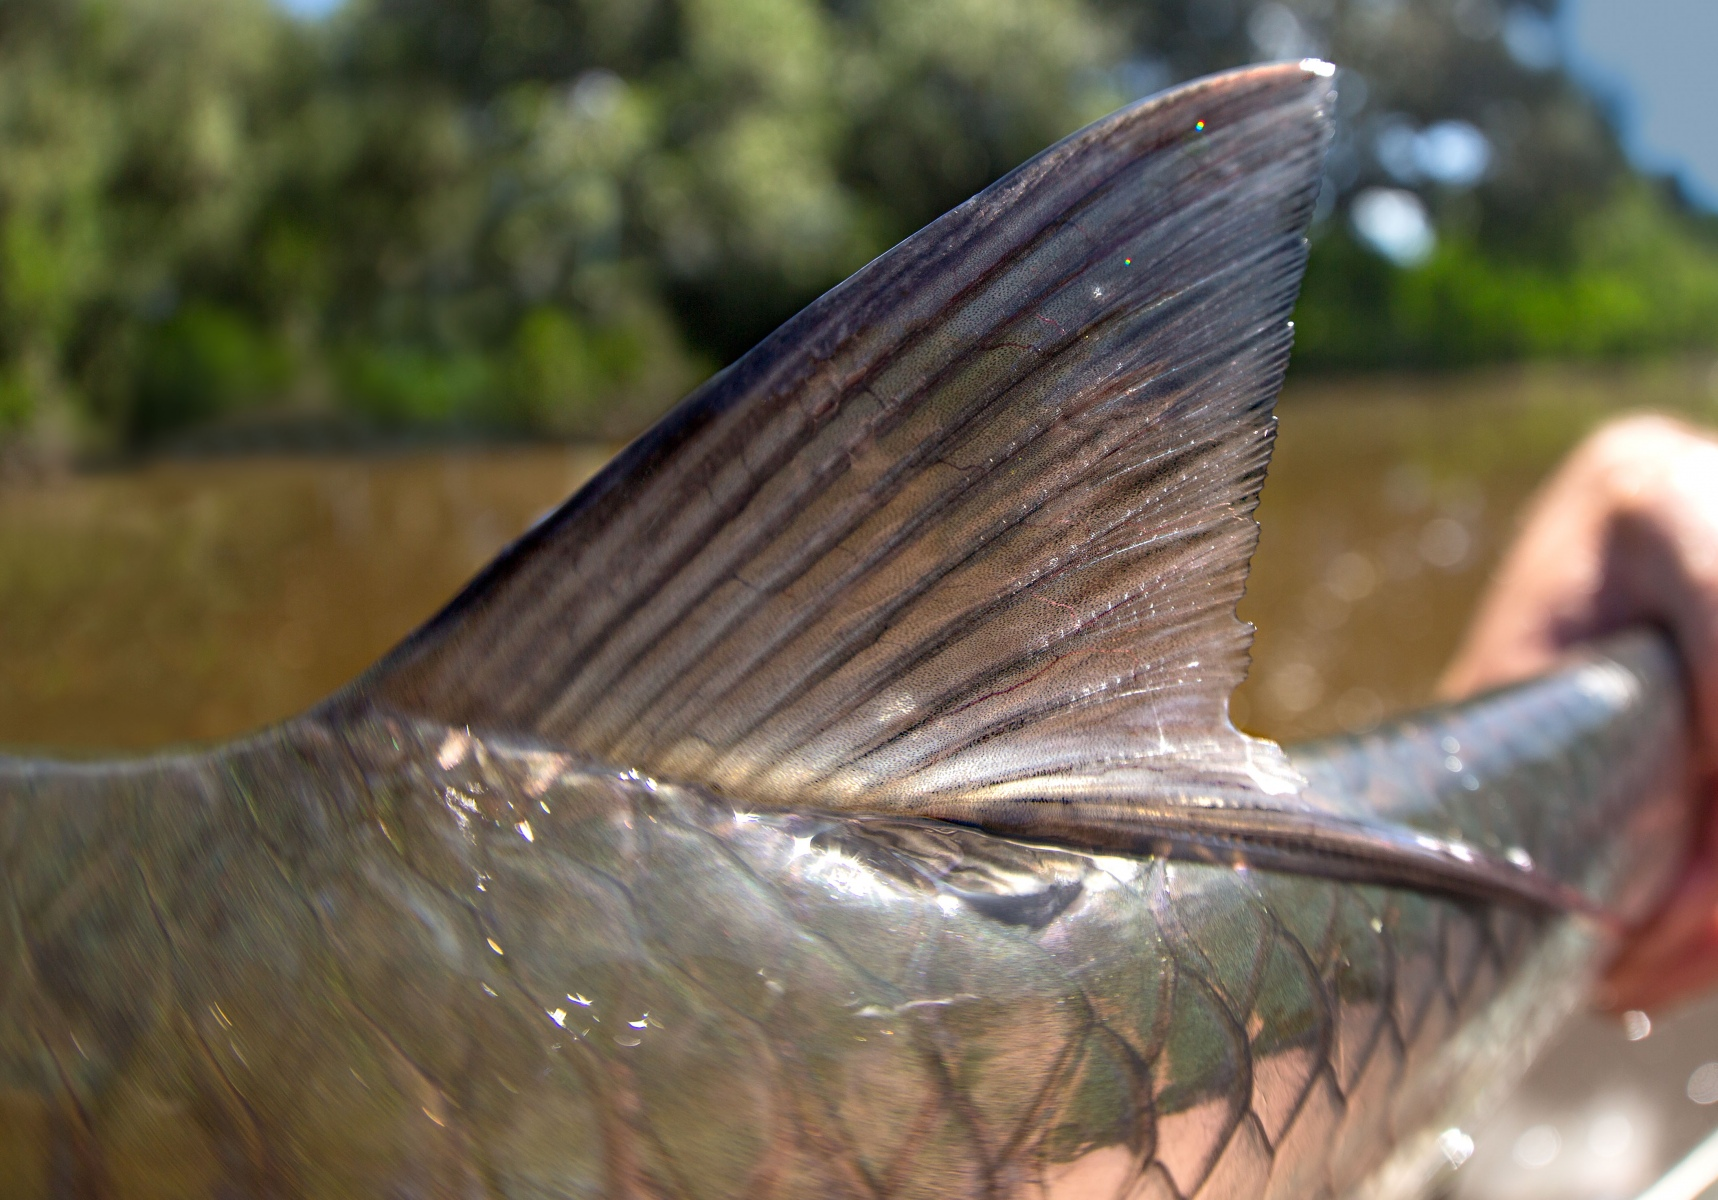 Detailed look at a small tarpon's dorsal fin